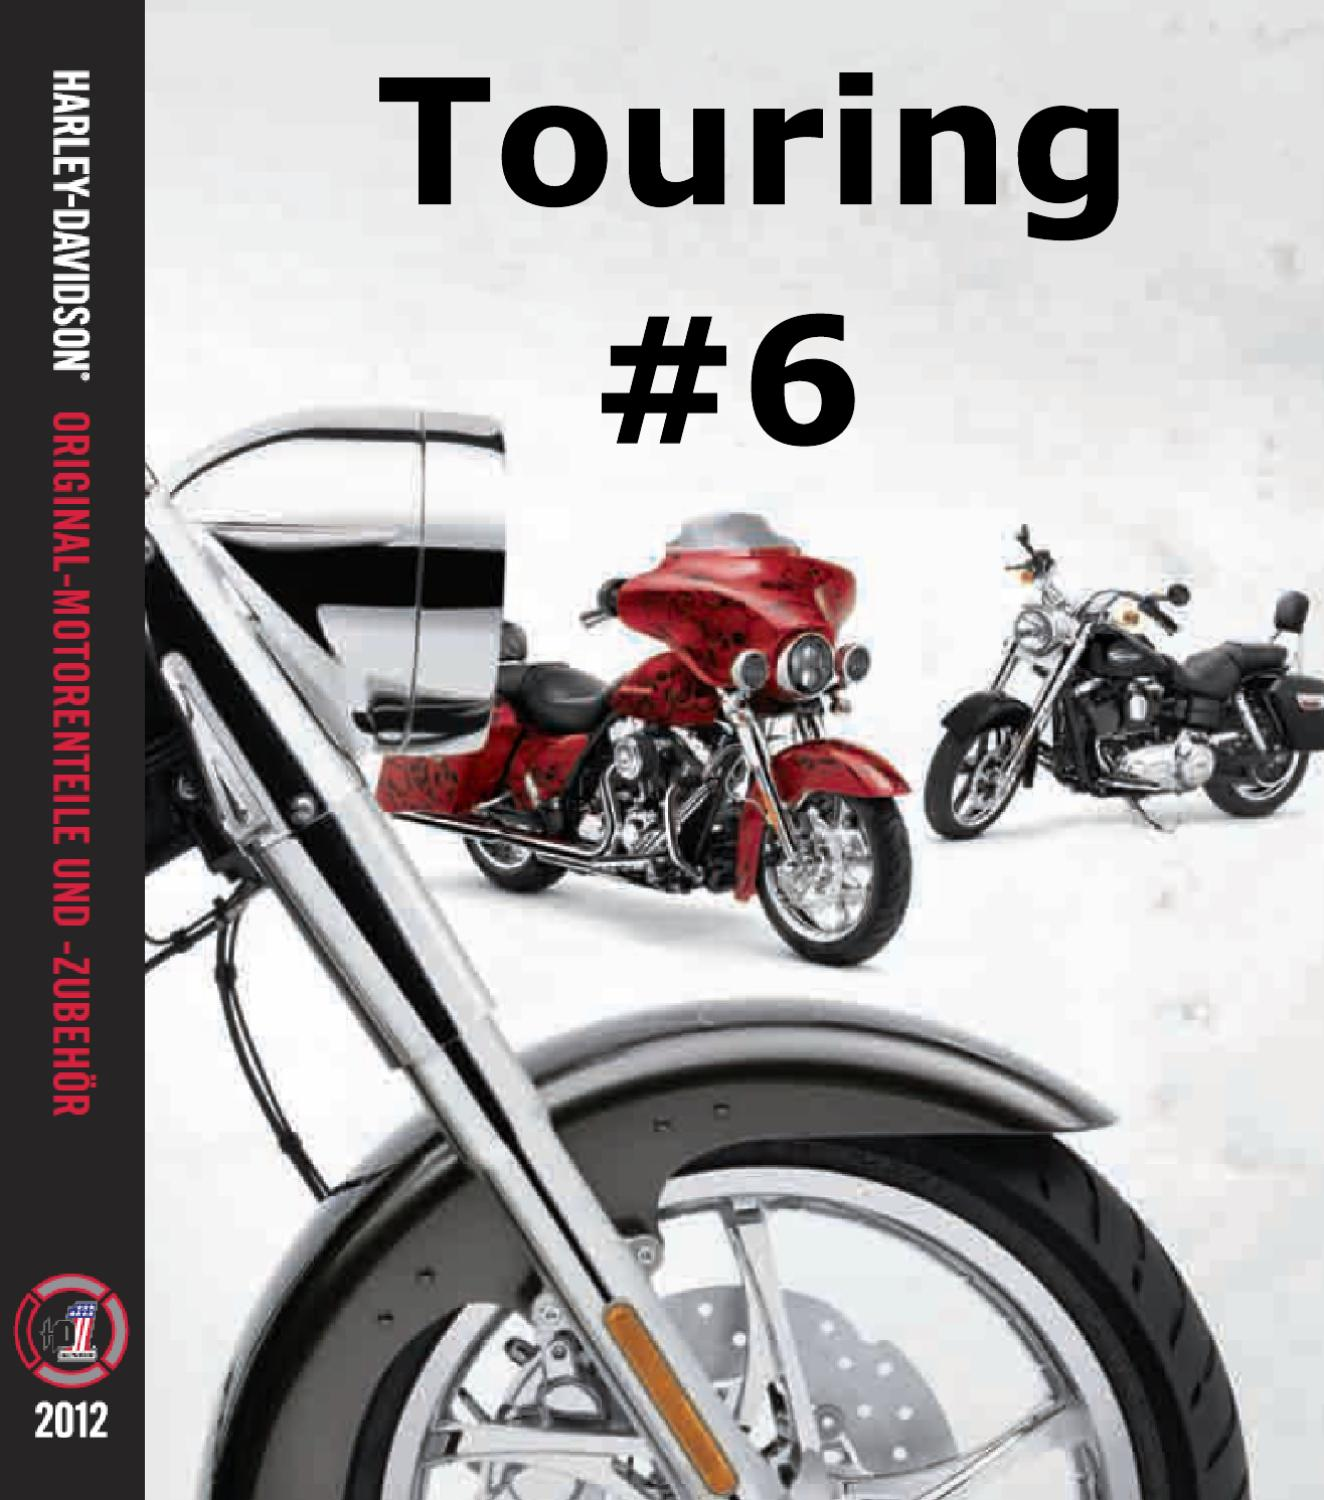 pa_2012_es_touring by Thomas Heavy Metal Bikes GmbH - issuu